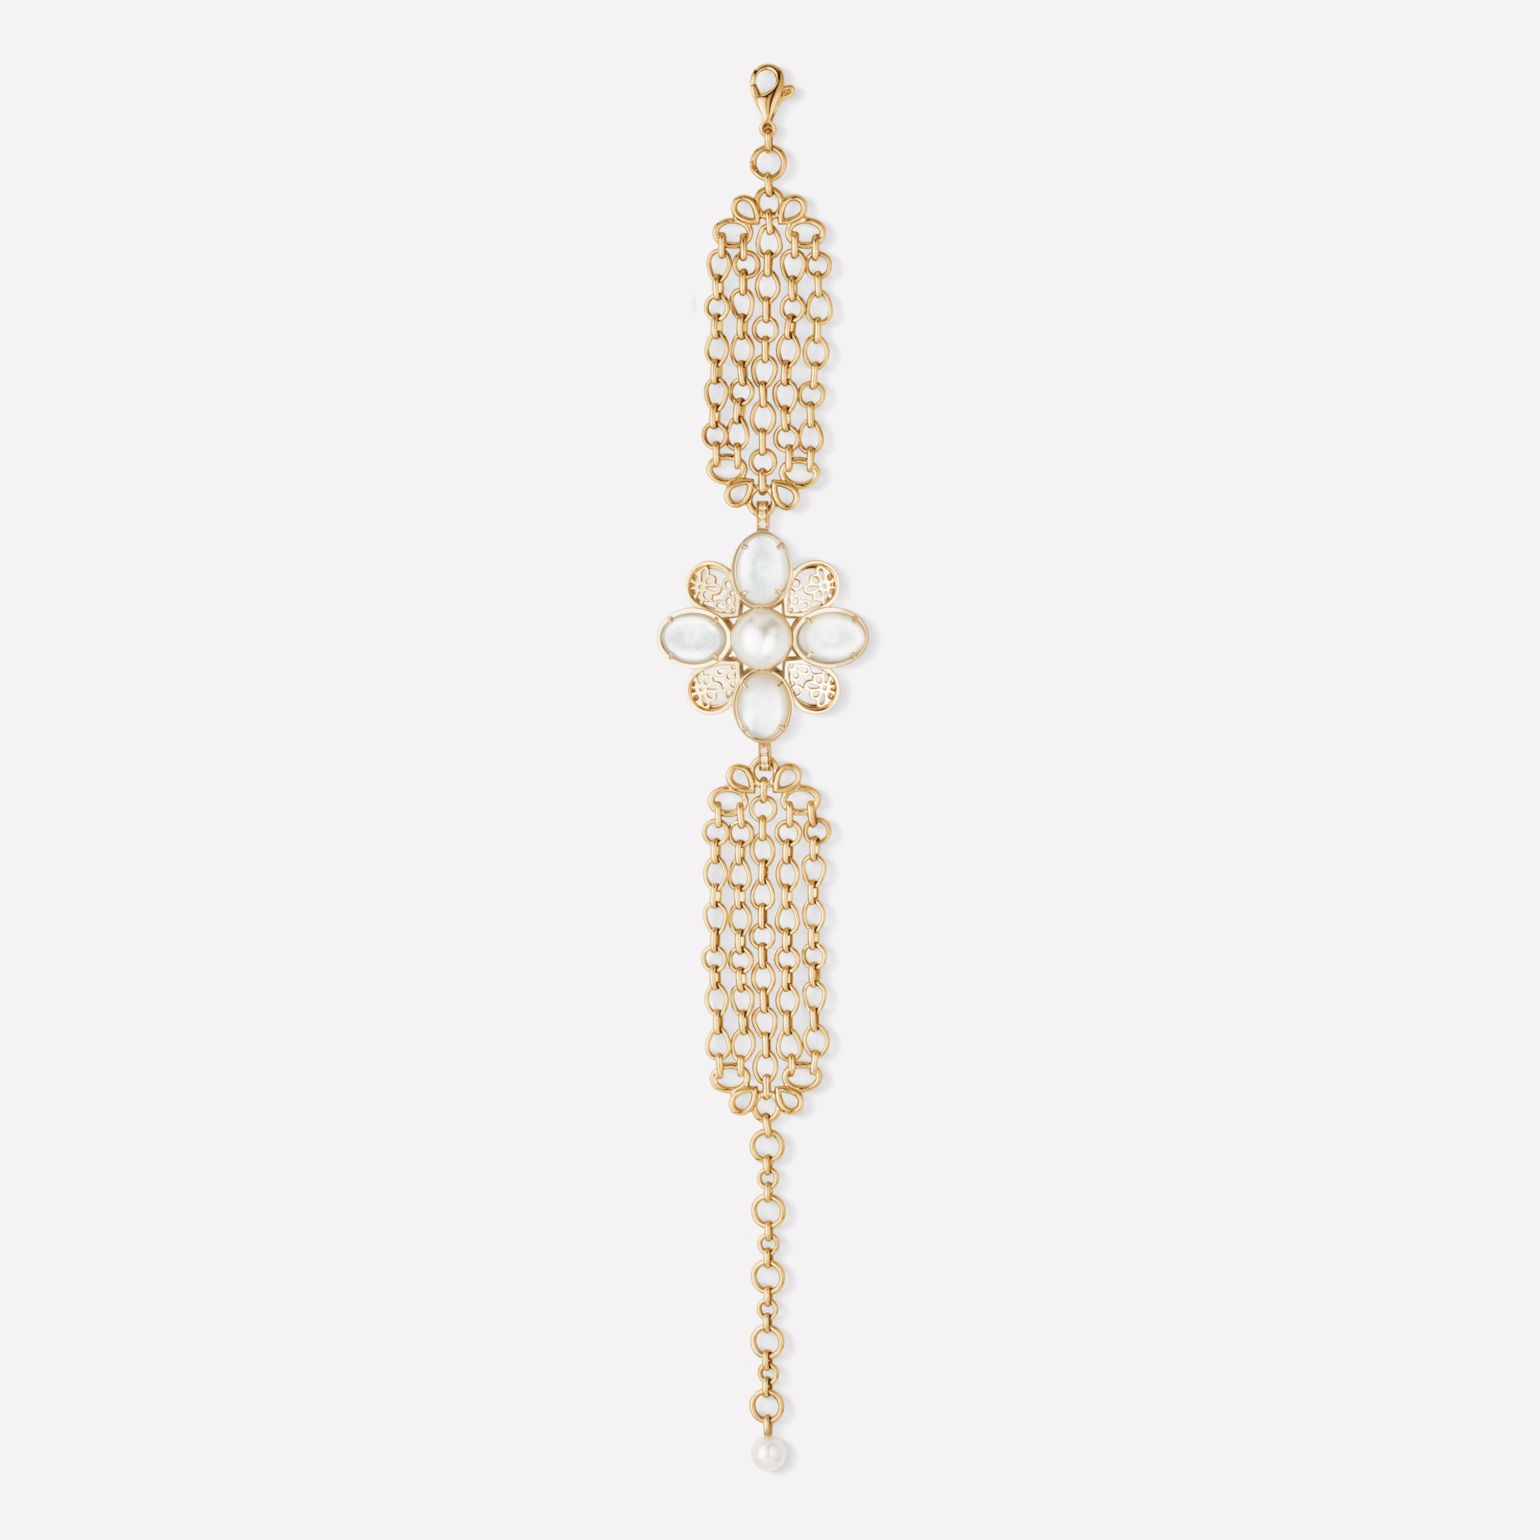 Baroque Bracelet Perles Chaînes bracelet in 18K yellow gold, diamonds, cultured pearls and semi-precious gemstones